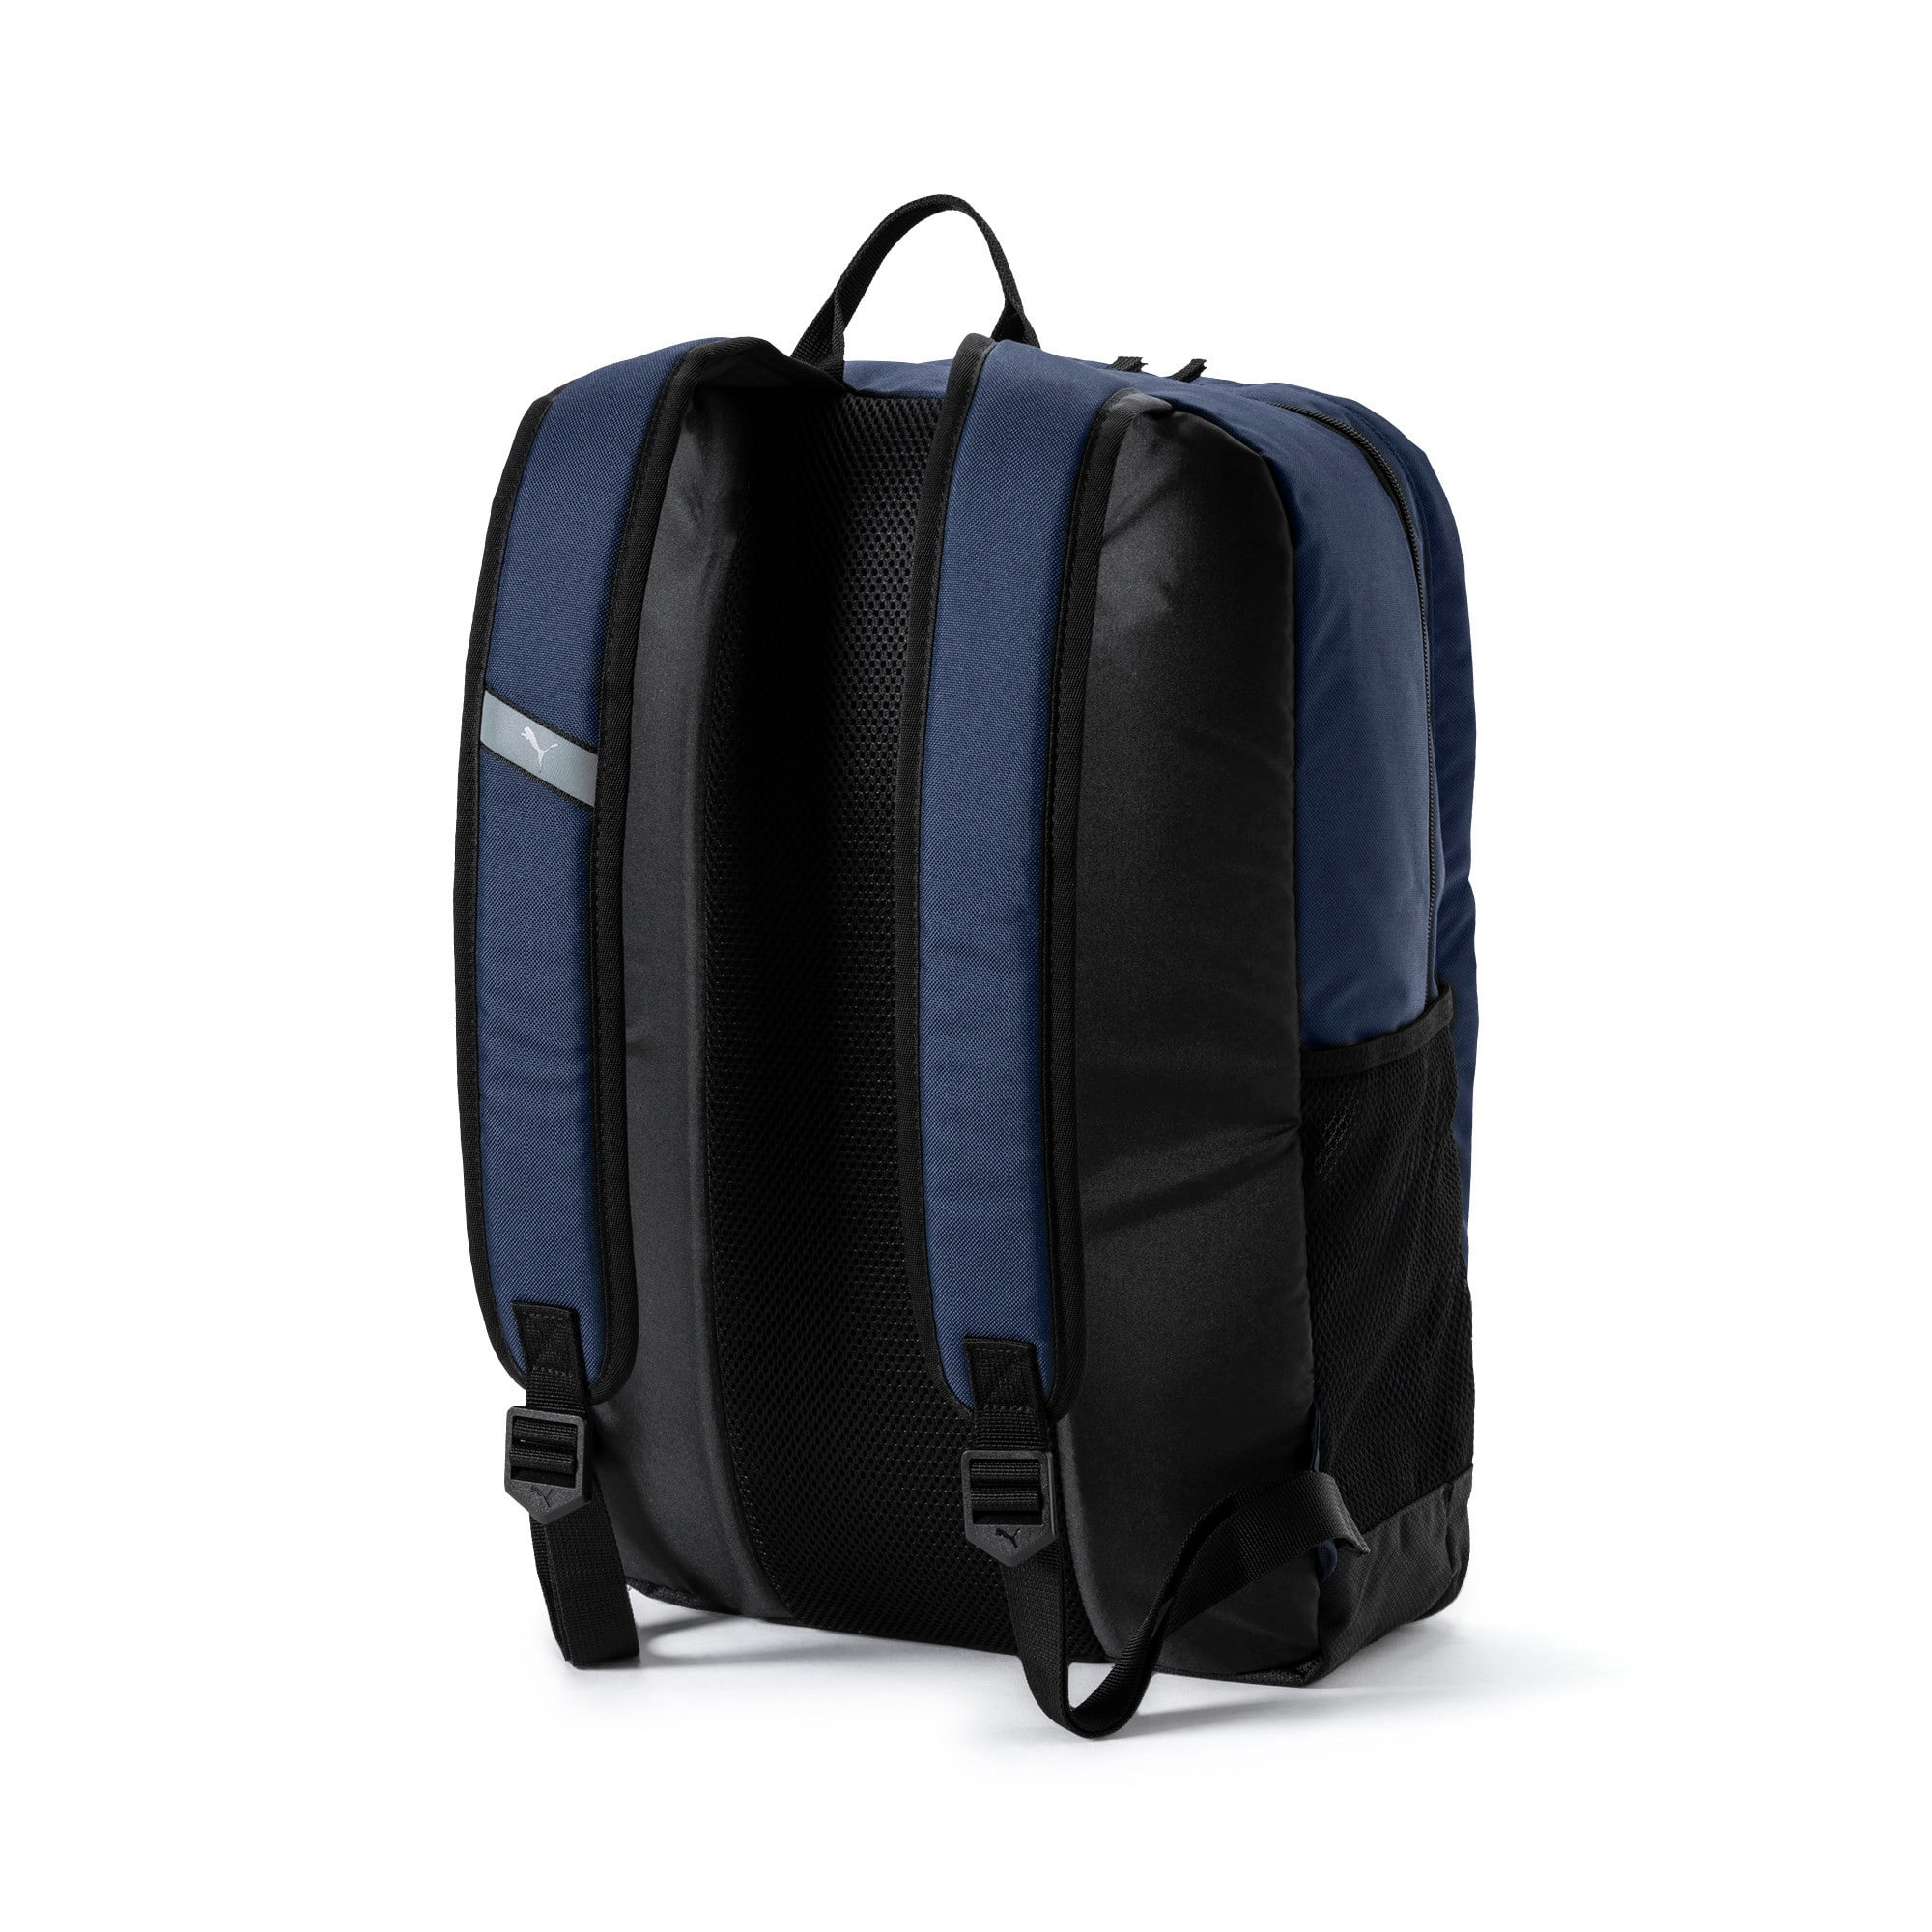 Thumbnail 2 of Square Backpack, Peacoat, medium-IND